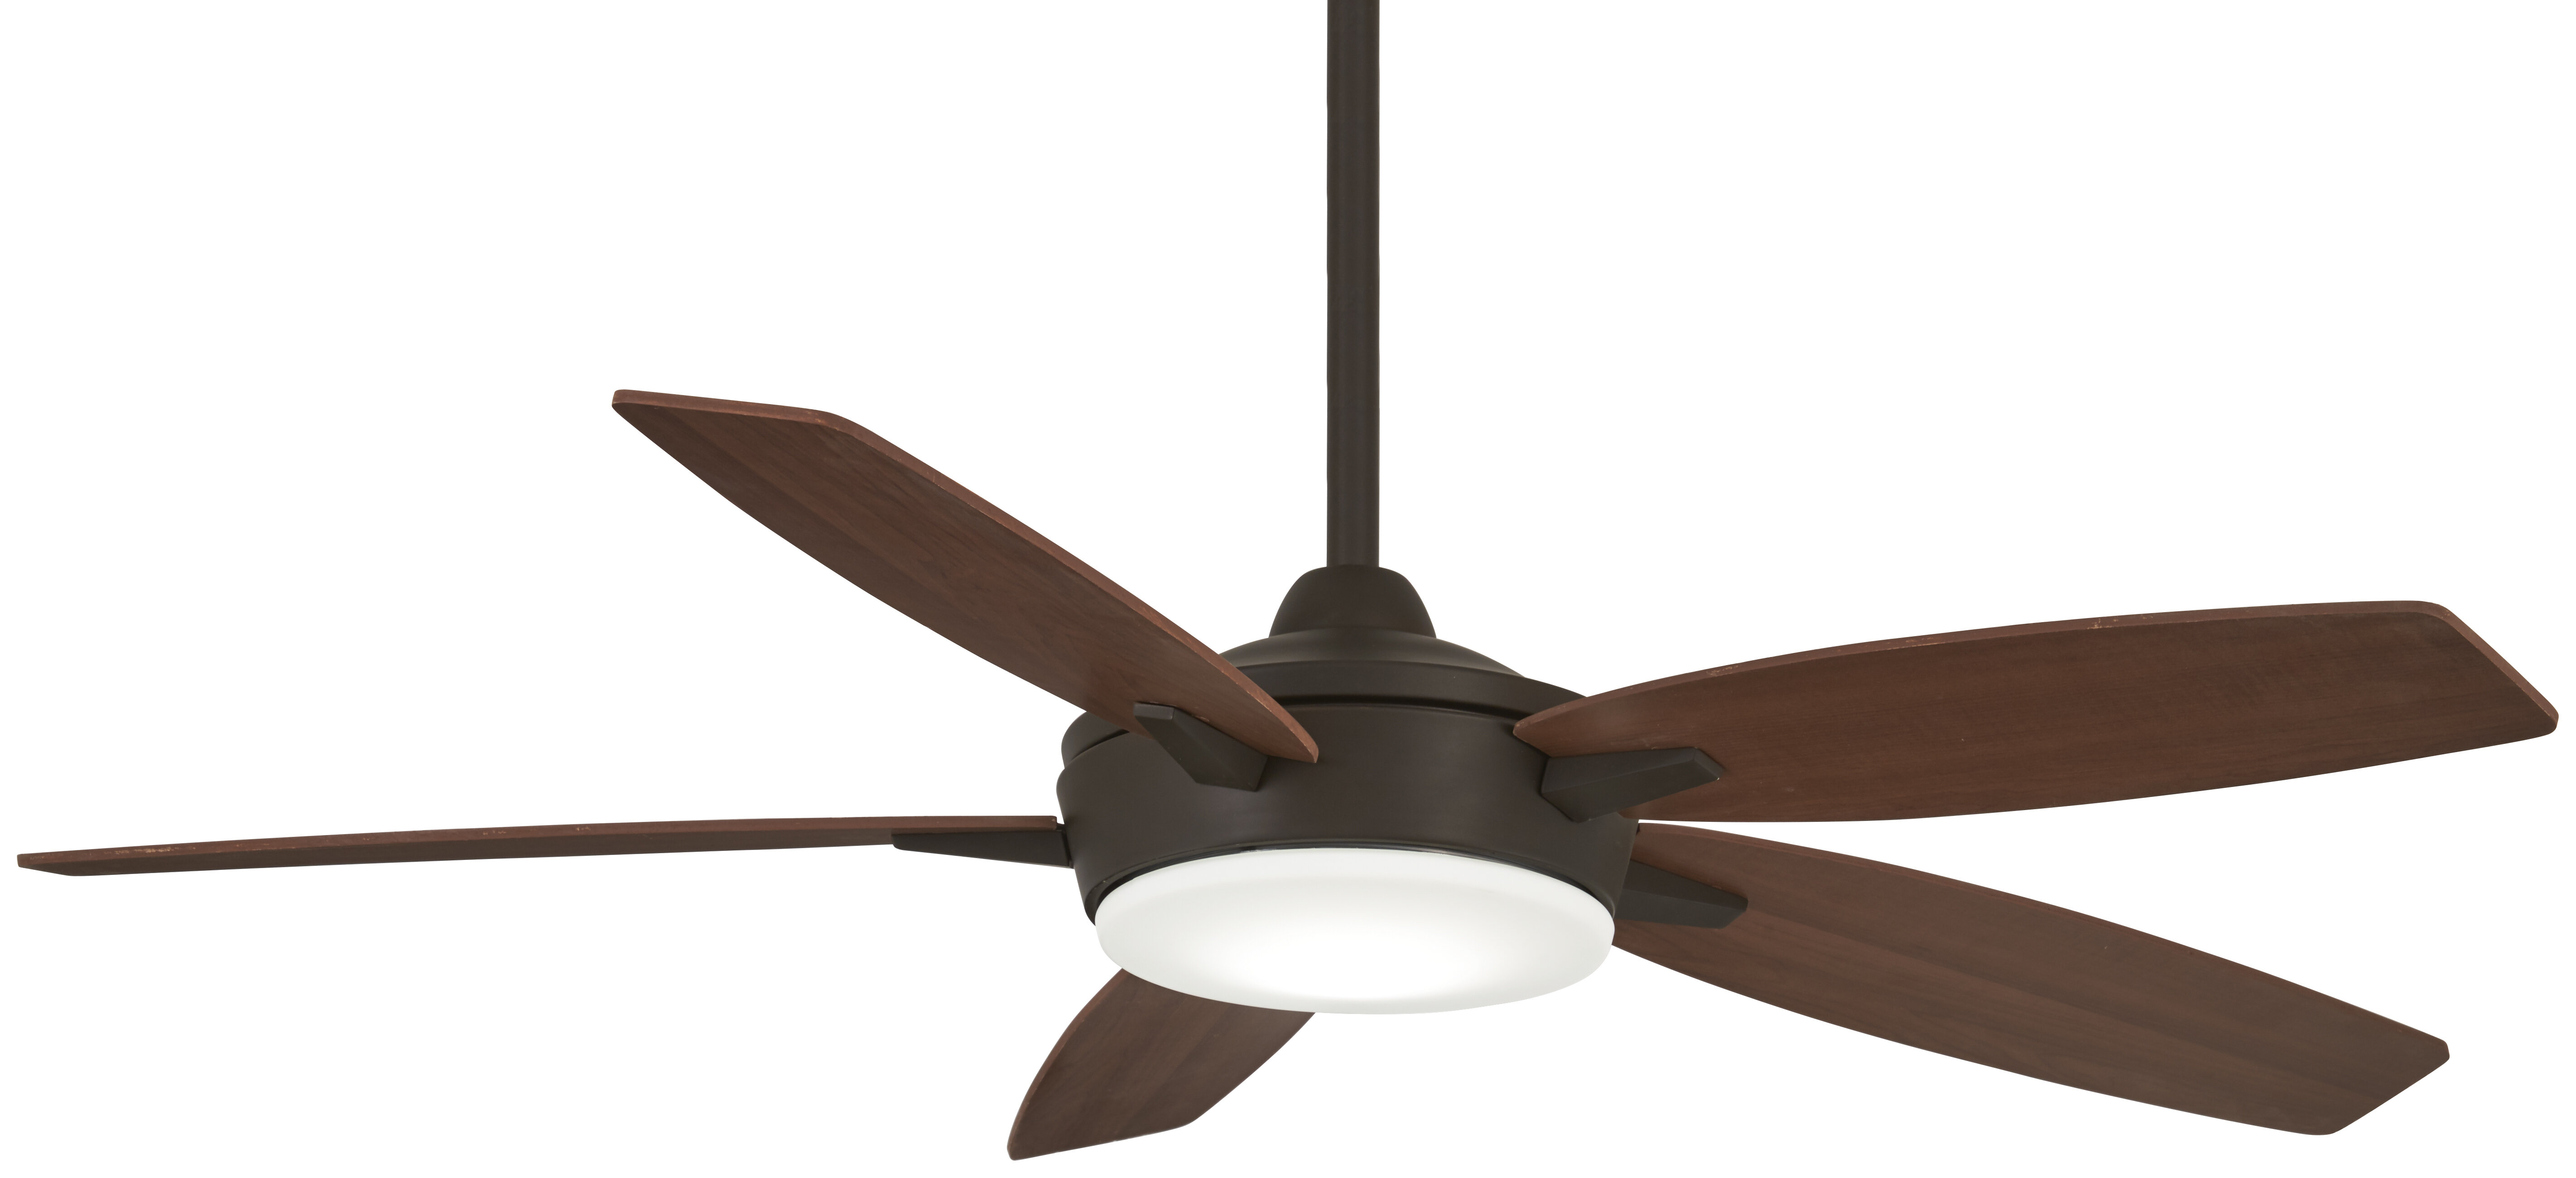 Minka Aire 52 Ee 5 Blade Led Ceiling Fan With Remote Reviews Wayfair